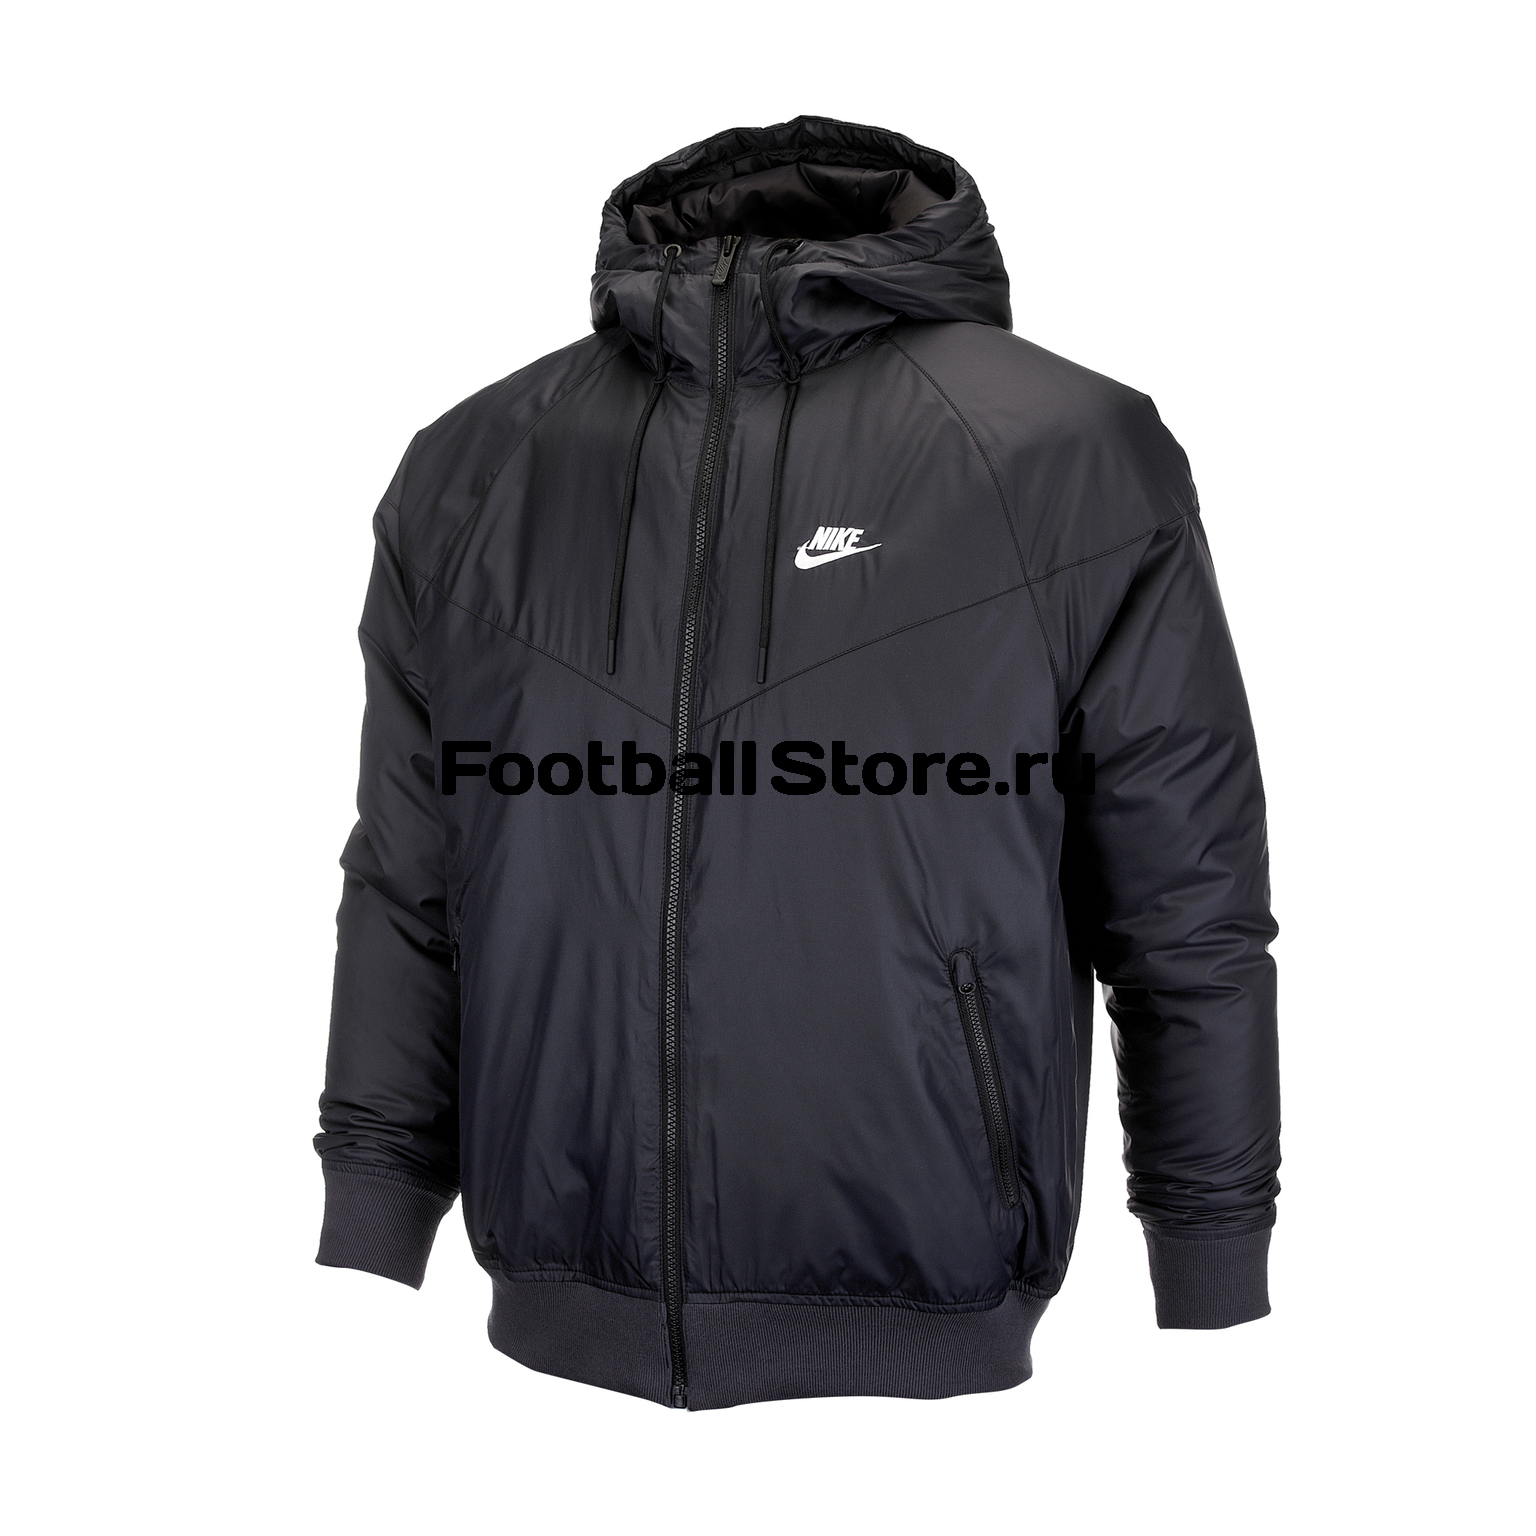 Куртка Nike Windrunner Jacket AR2189-010 куртка мужская nike men s dry training jacket 800199 021